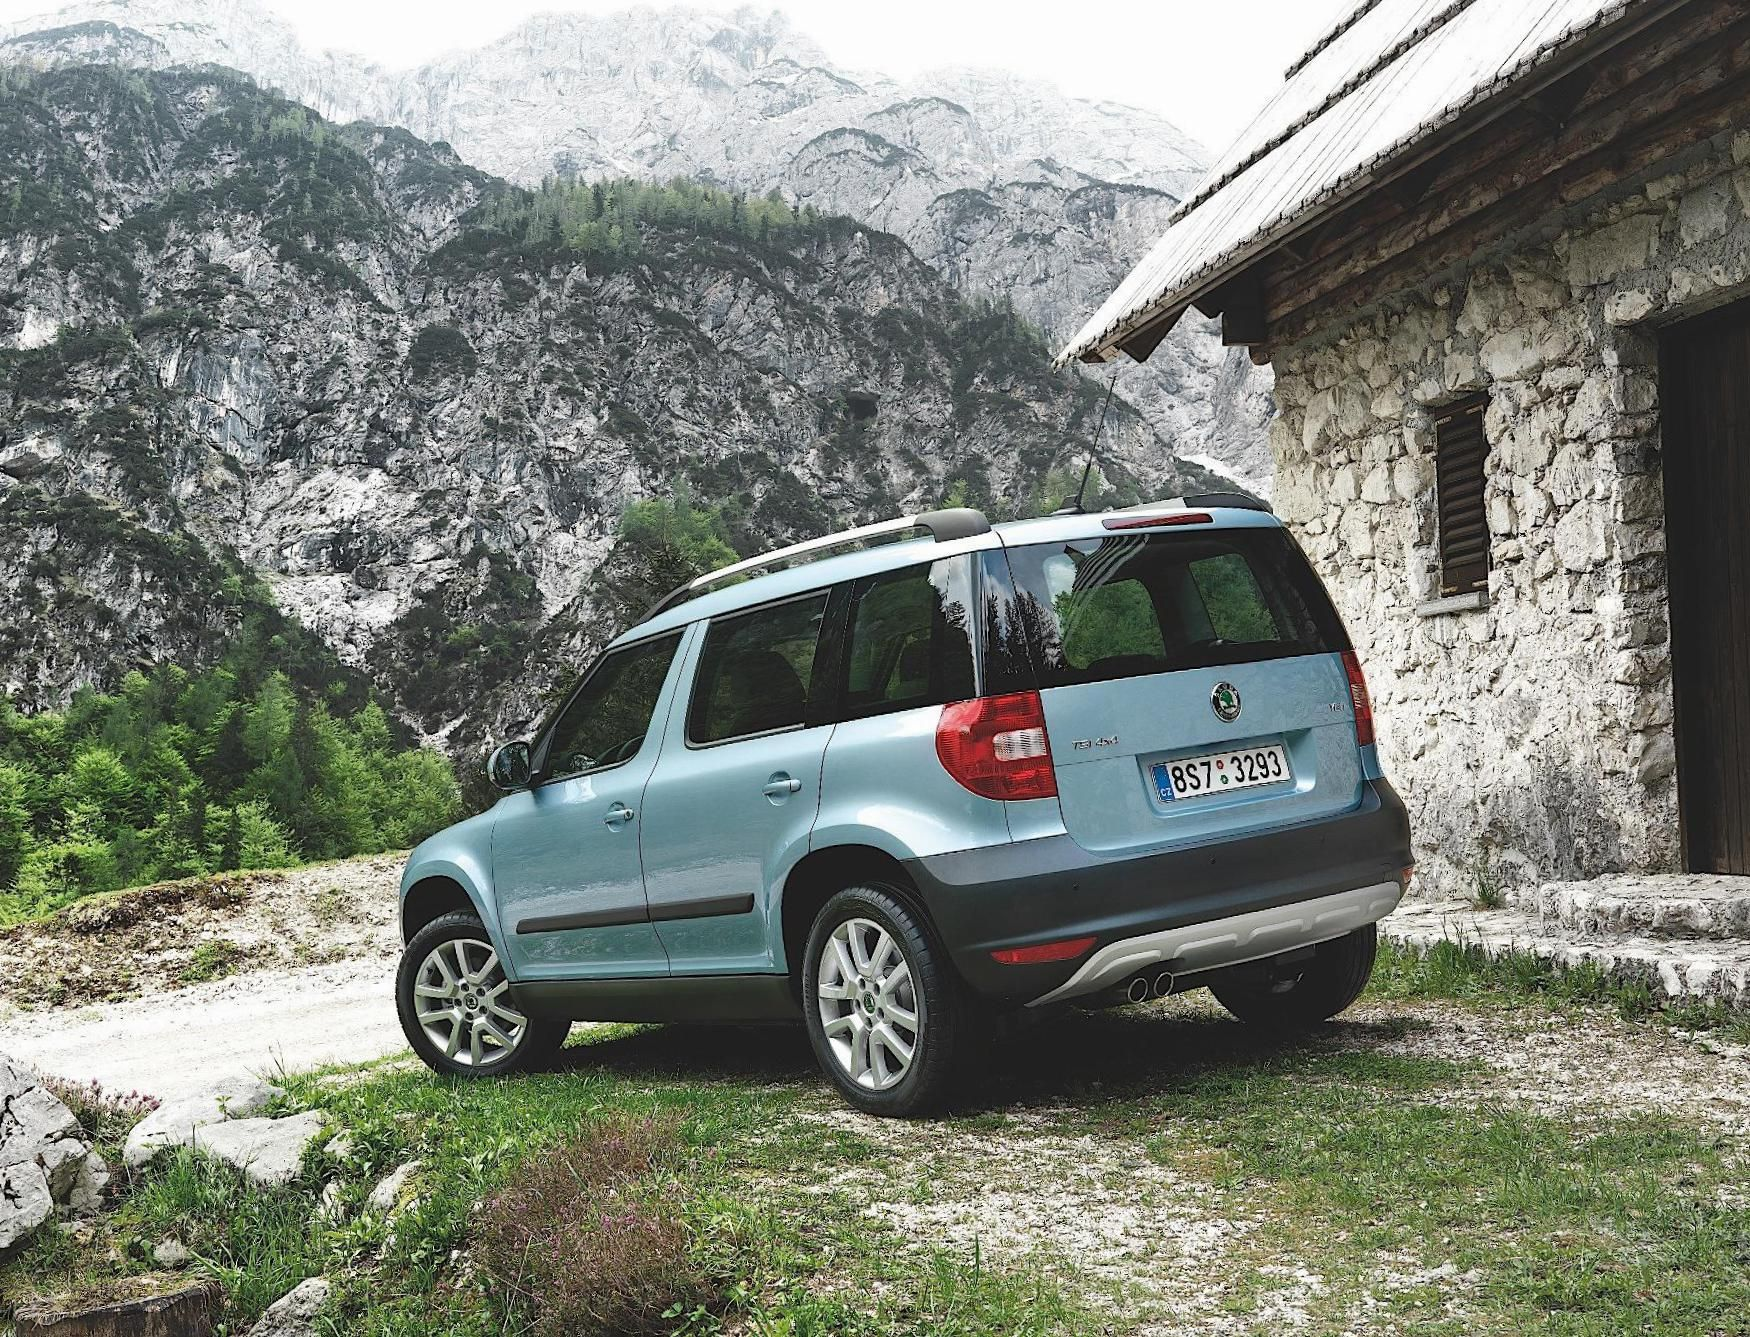 Skoda yeti 2017 review release date new automotive trends skoda - Explore Outdoor Family Cars And More Yeti Skoda Specifications